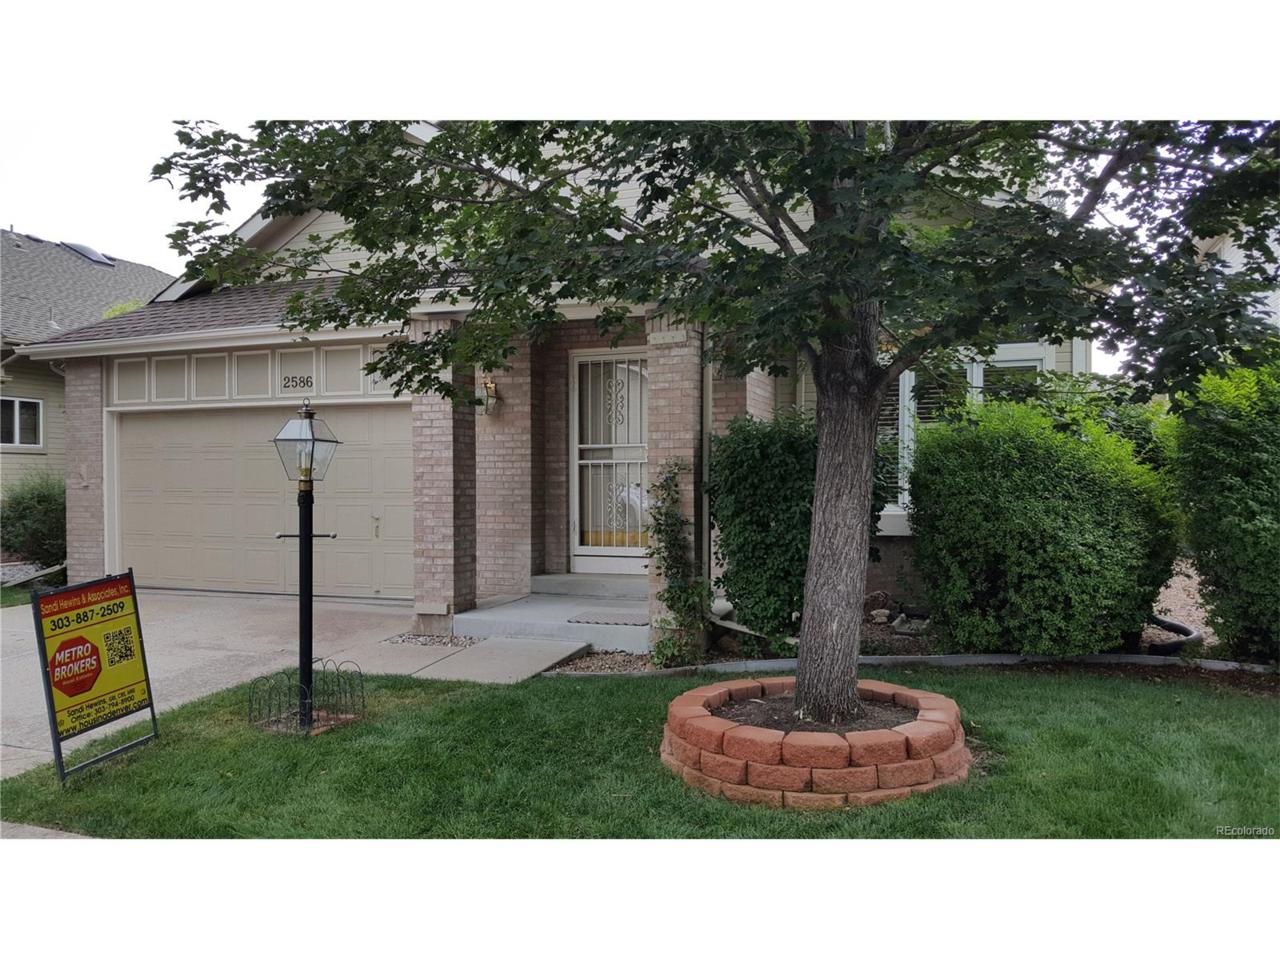 2586 S Independence Court, Lakewood, CO 80227 (MLS #5774707) :: 8z Real Estate